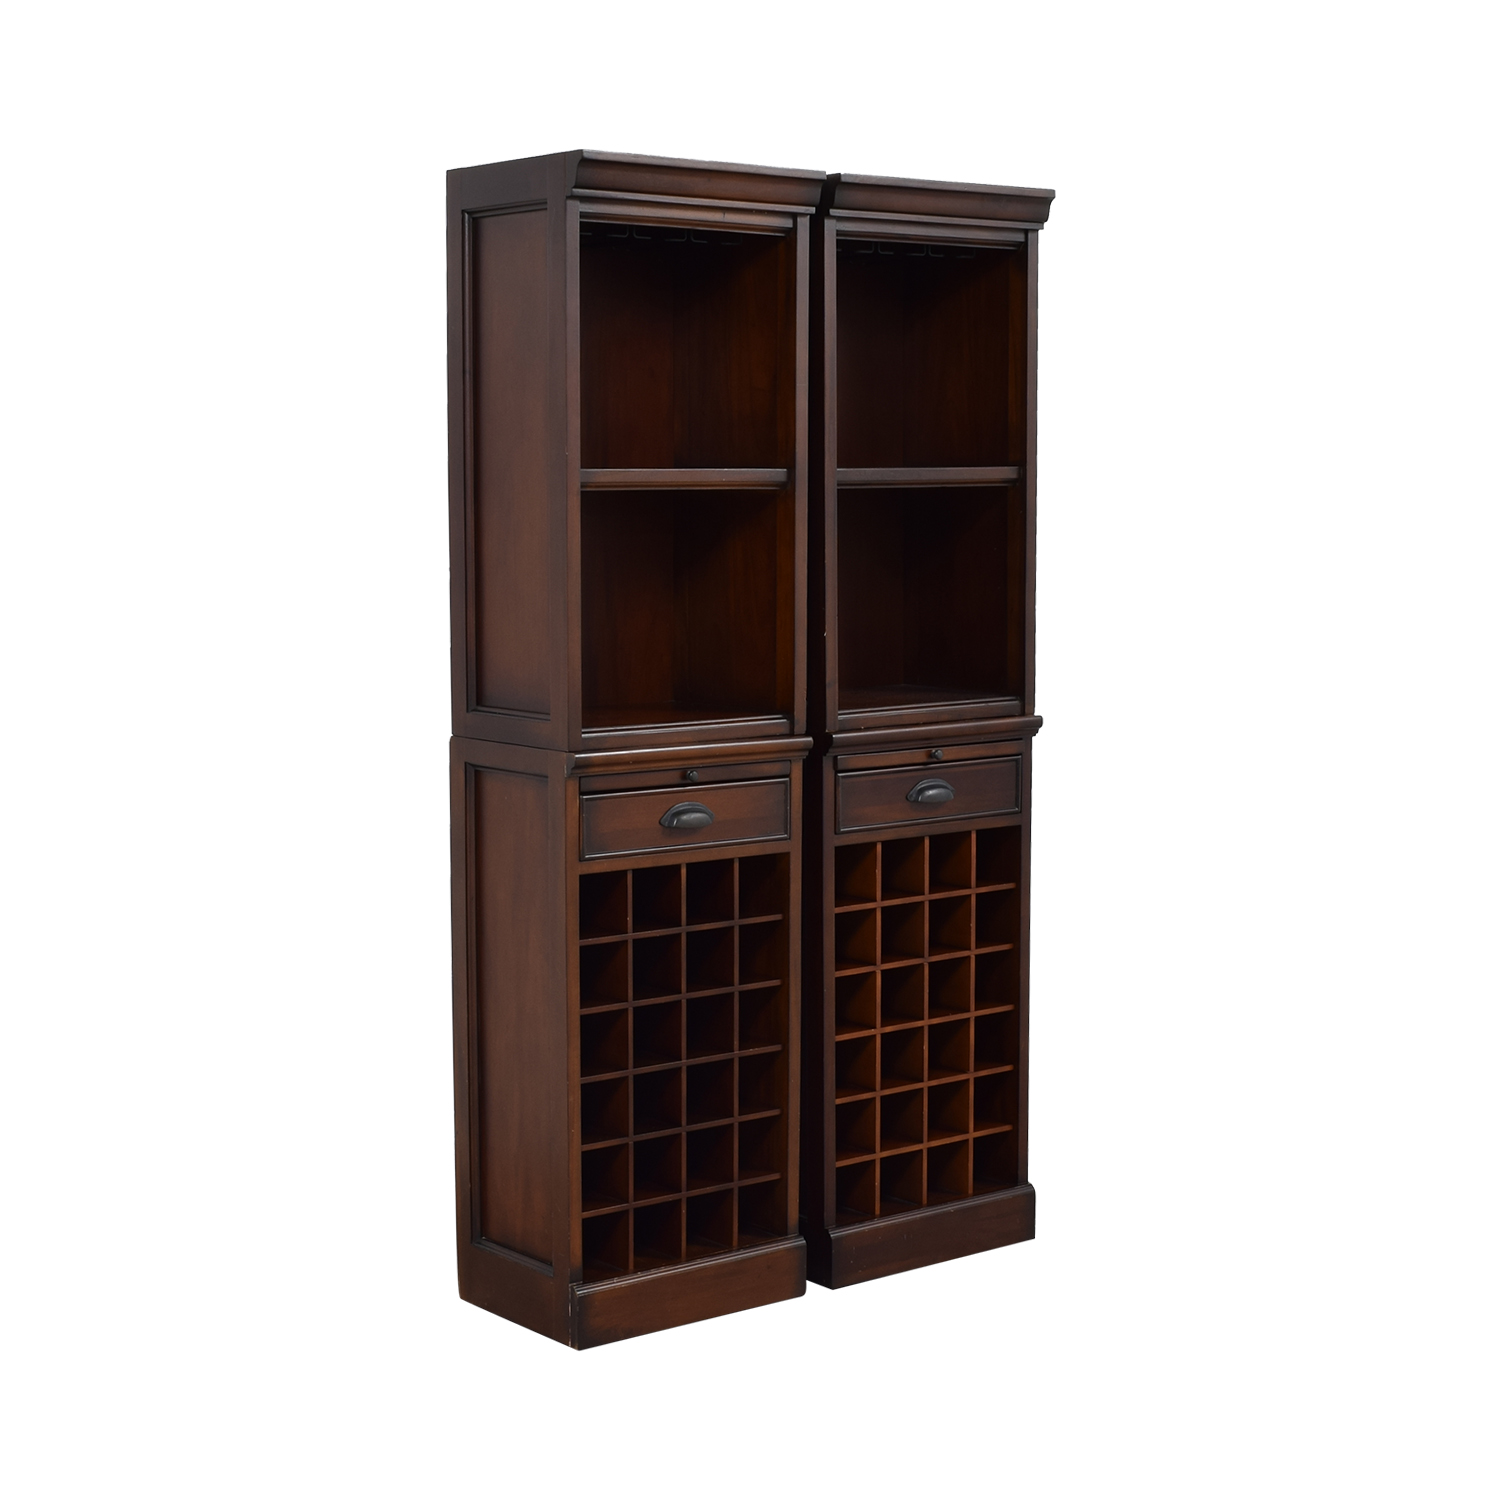 Pottery Barn Modular Wine Towers sale